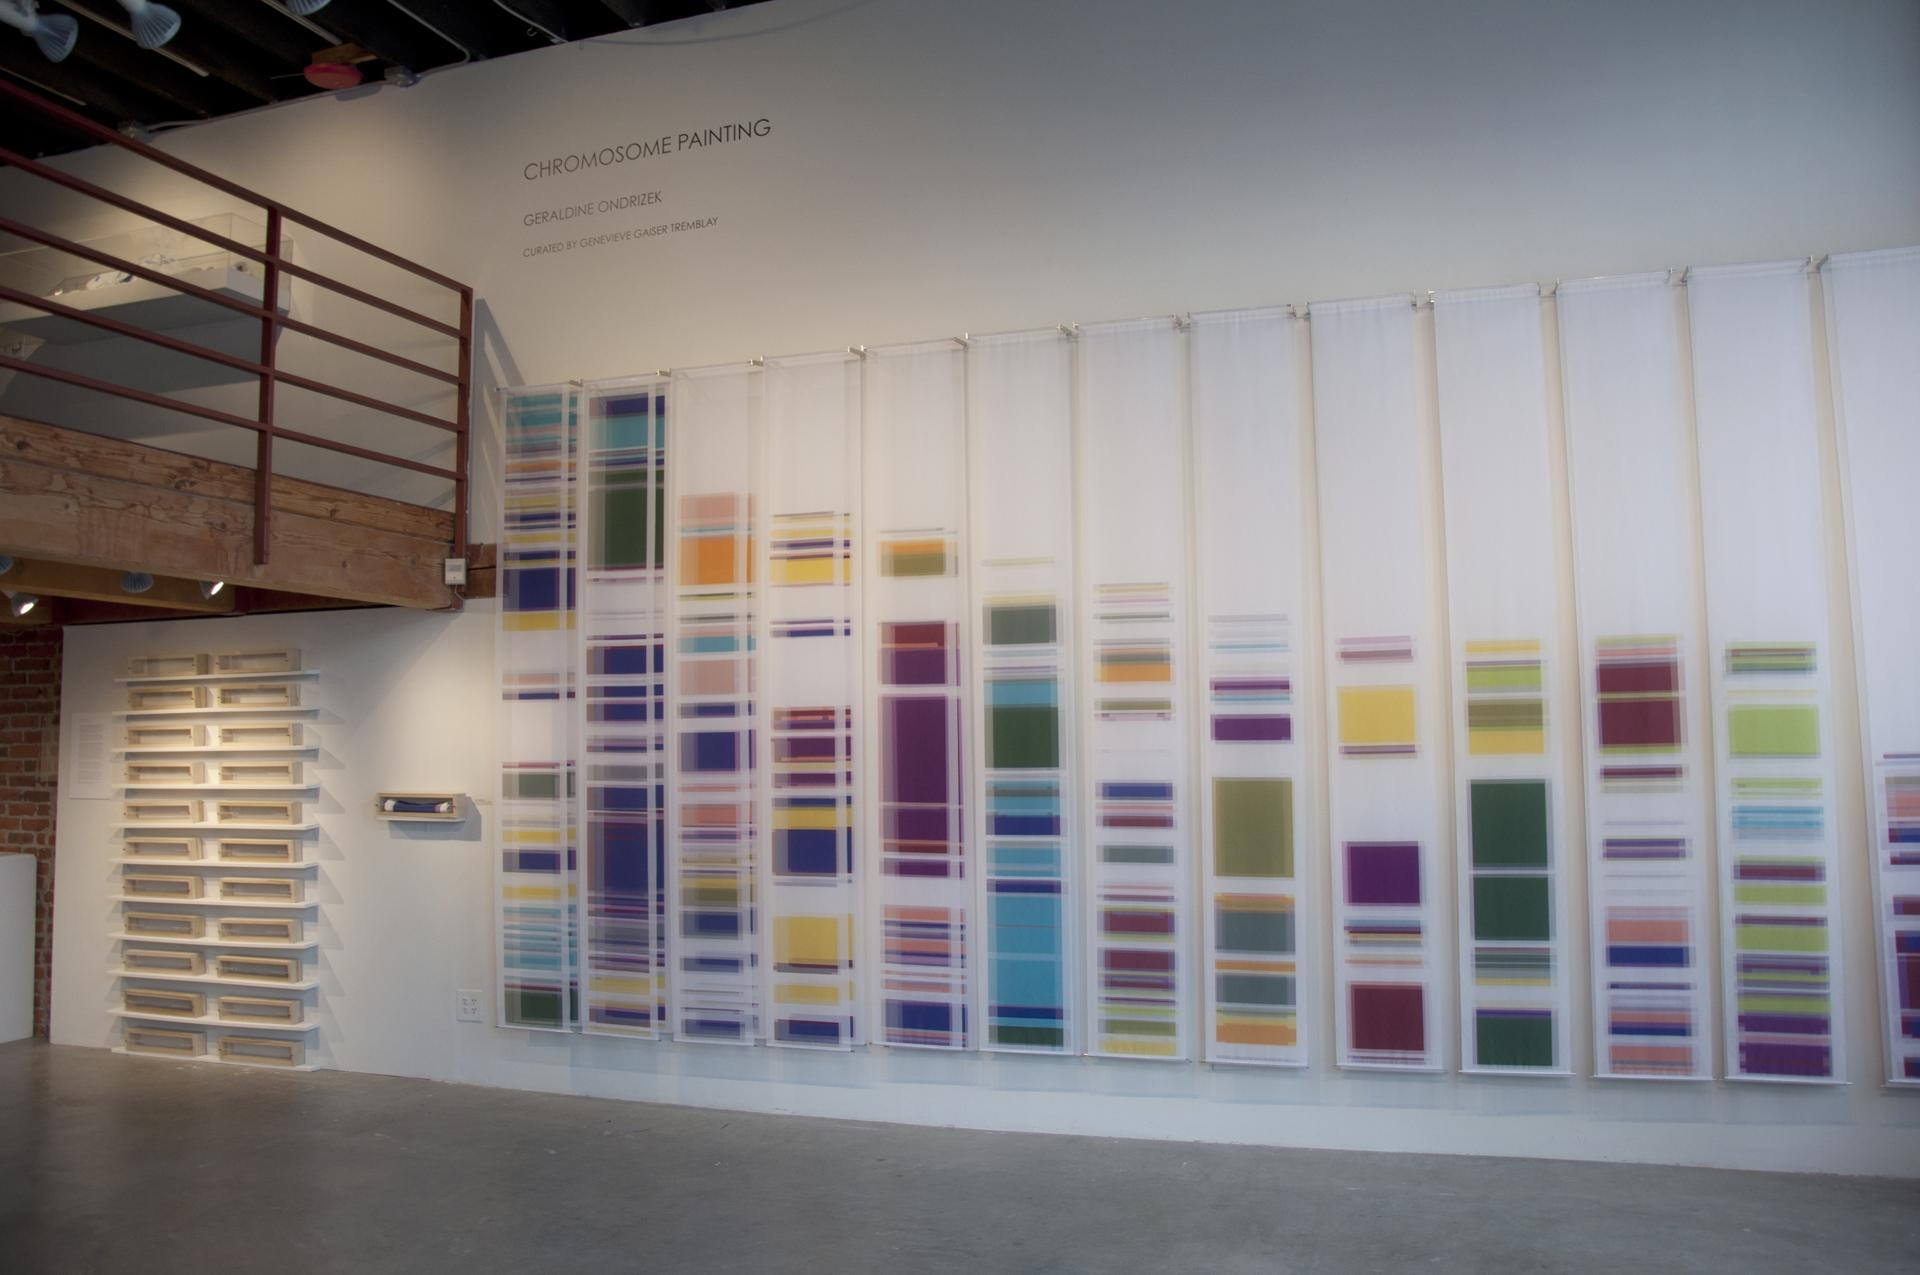 Chromosome Painting: Discovering Beauty In Dna | Uw News Within Dna Wall Art (Image 5 of 20)